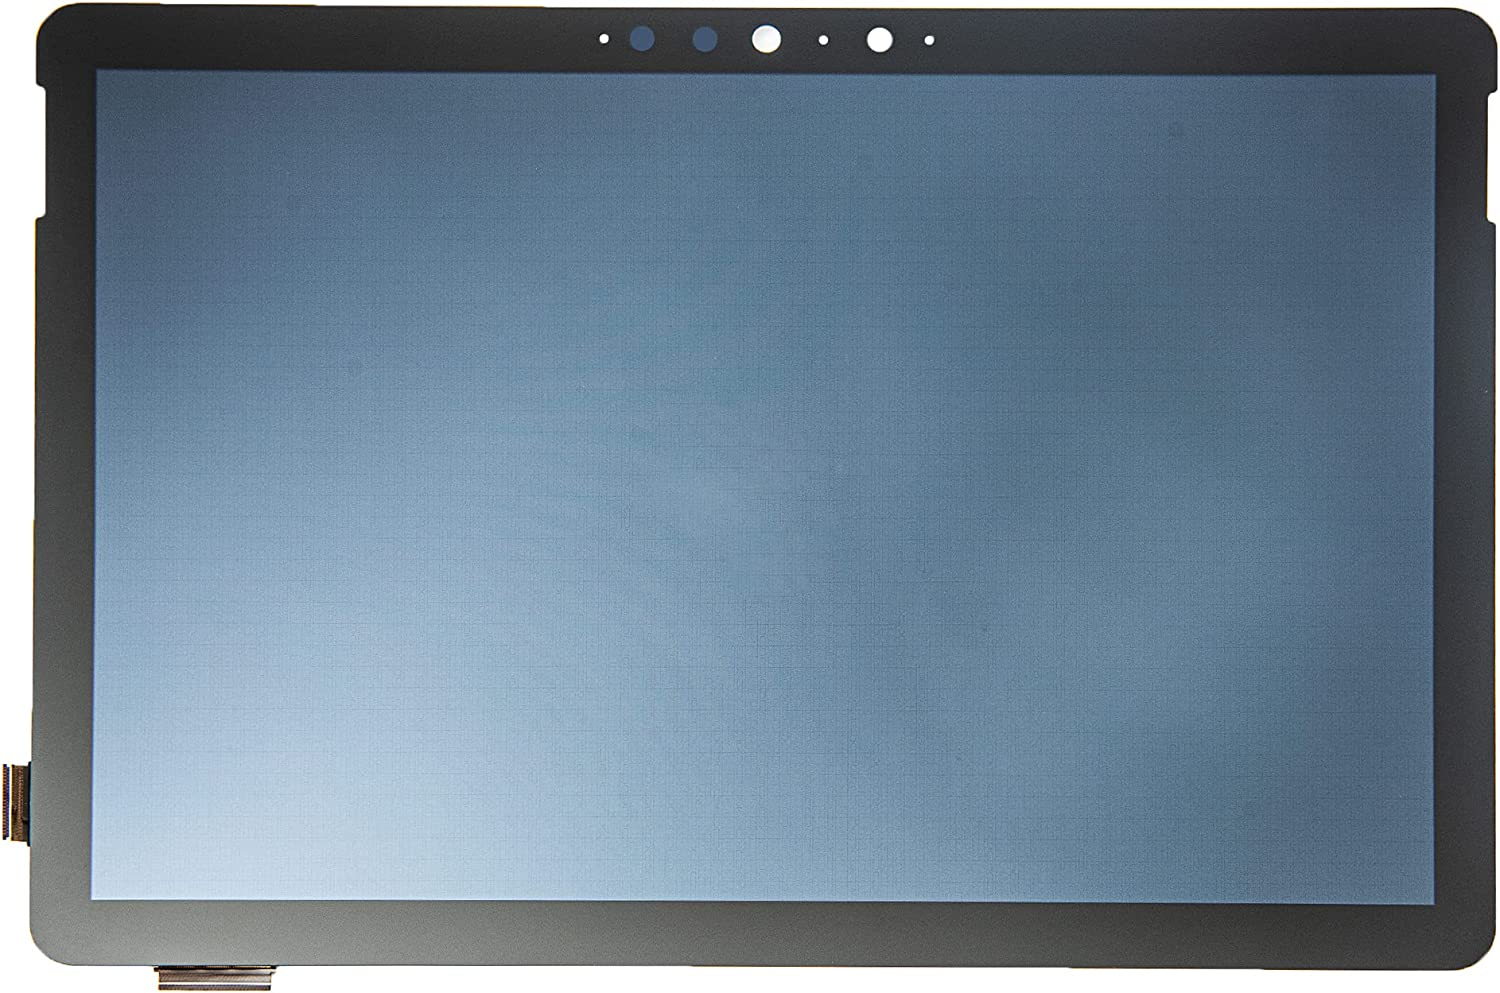 New Screen Replacement for Microsoft Surface Go 1926 1901 1927 2 El Paso Mall gift